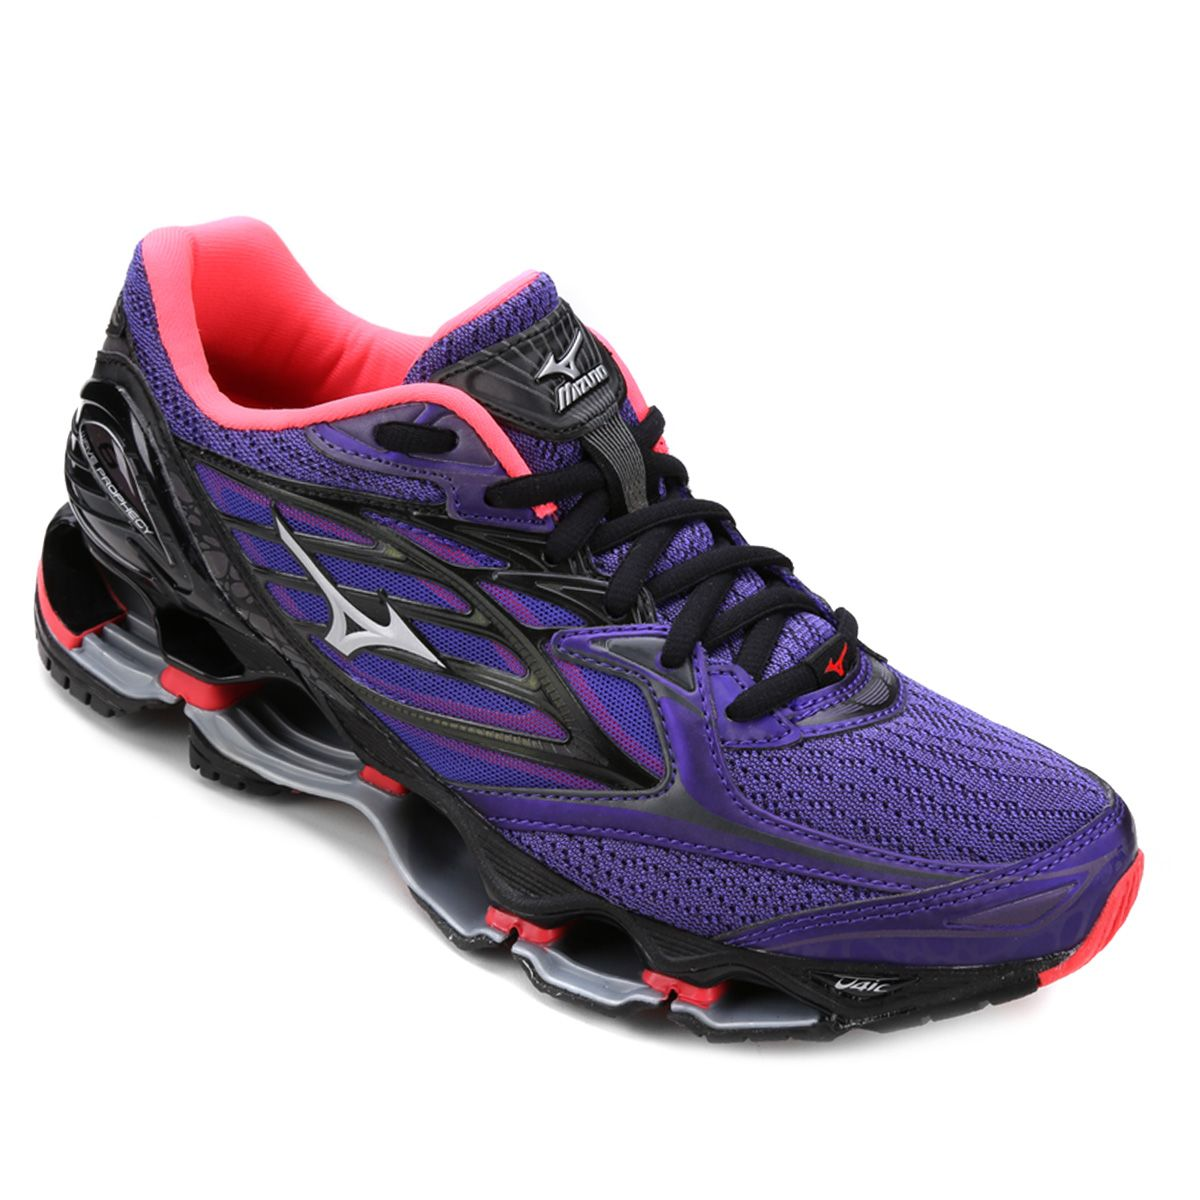 ab8130d95a Mizuno Wave Prophecy 6 - March 2017